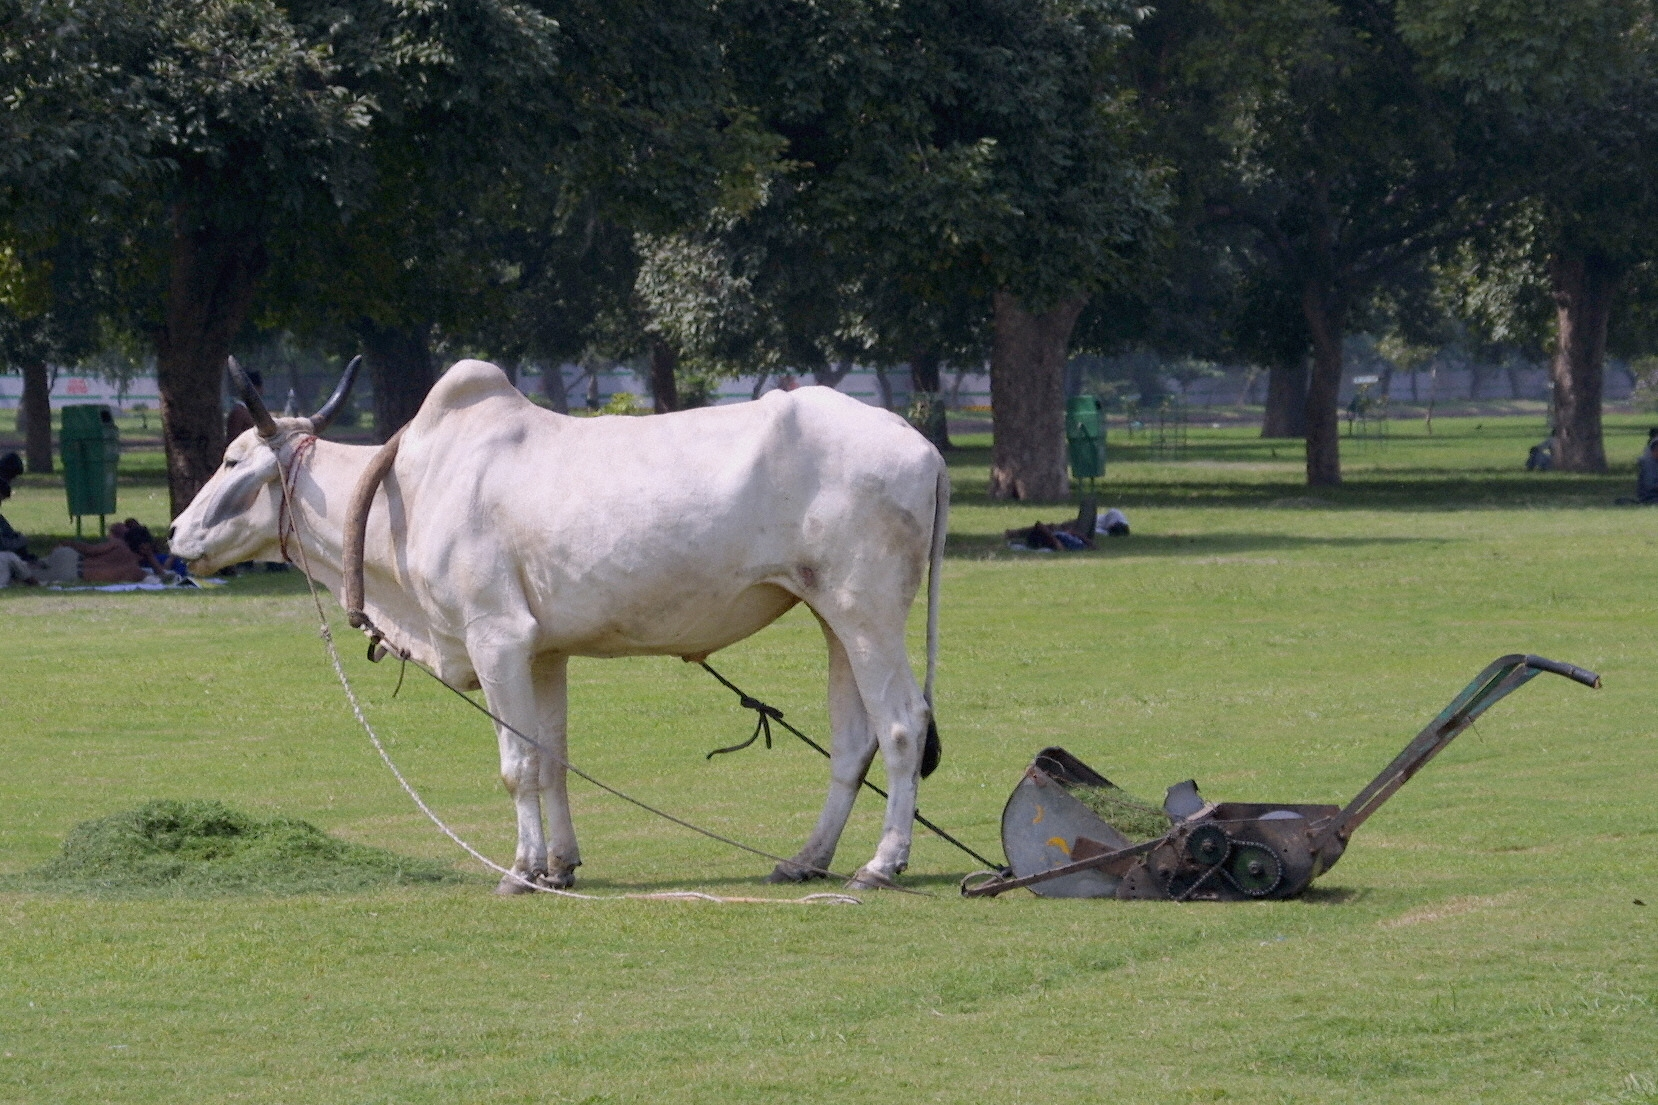 A cow pulls a lawnmower on the Rajpath in New Delhi